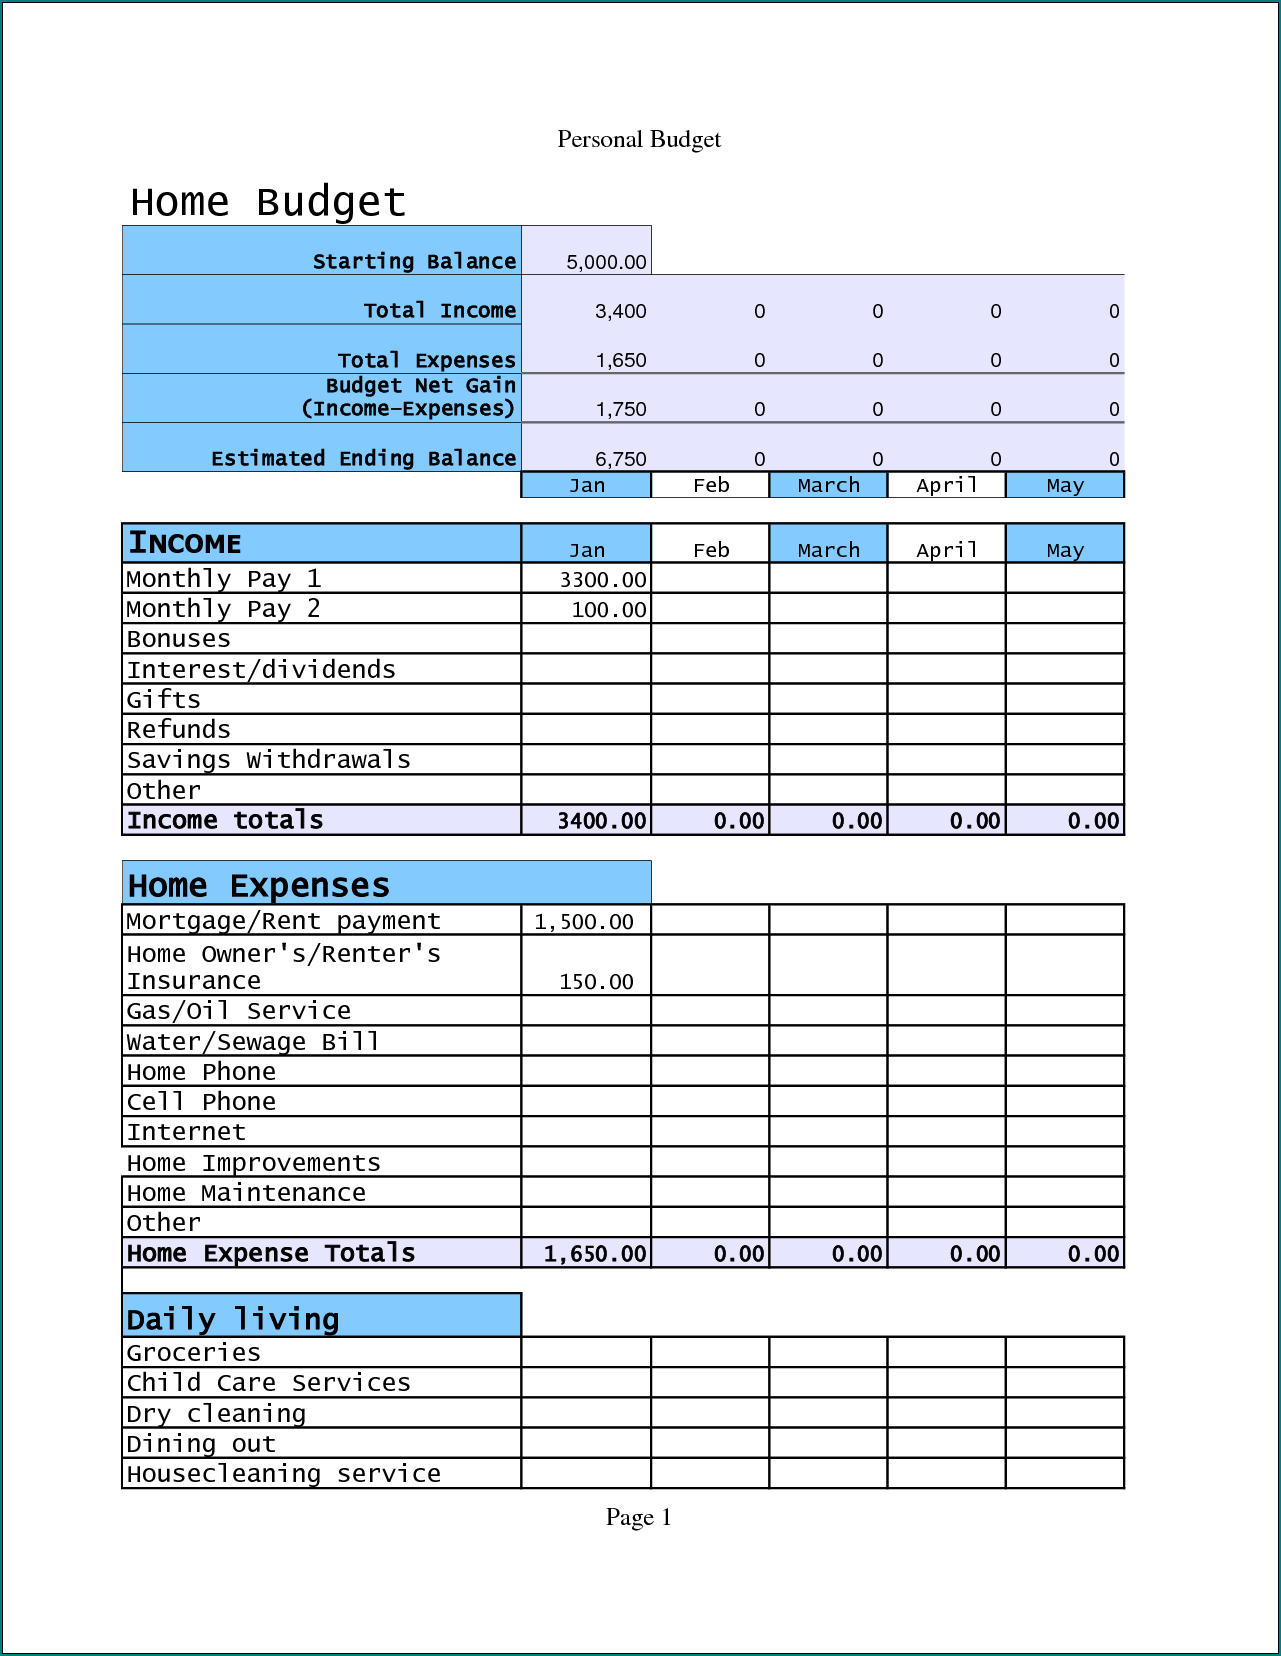 Example of Home Budget Template